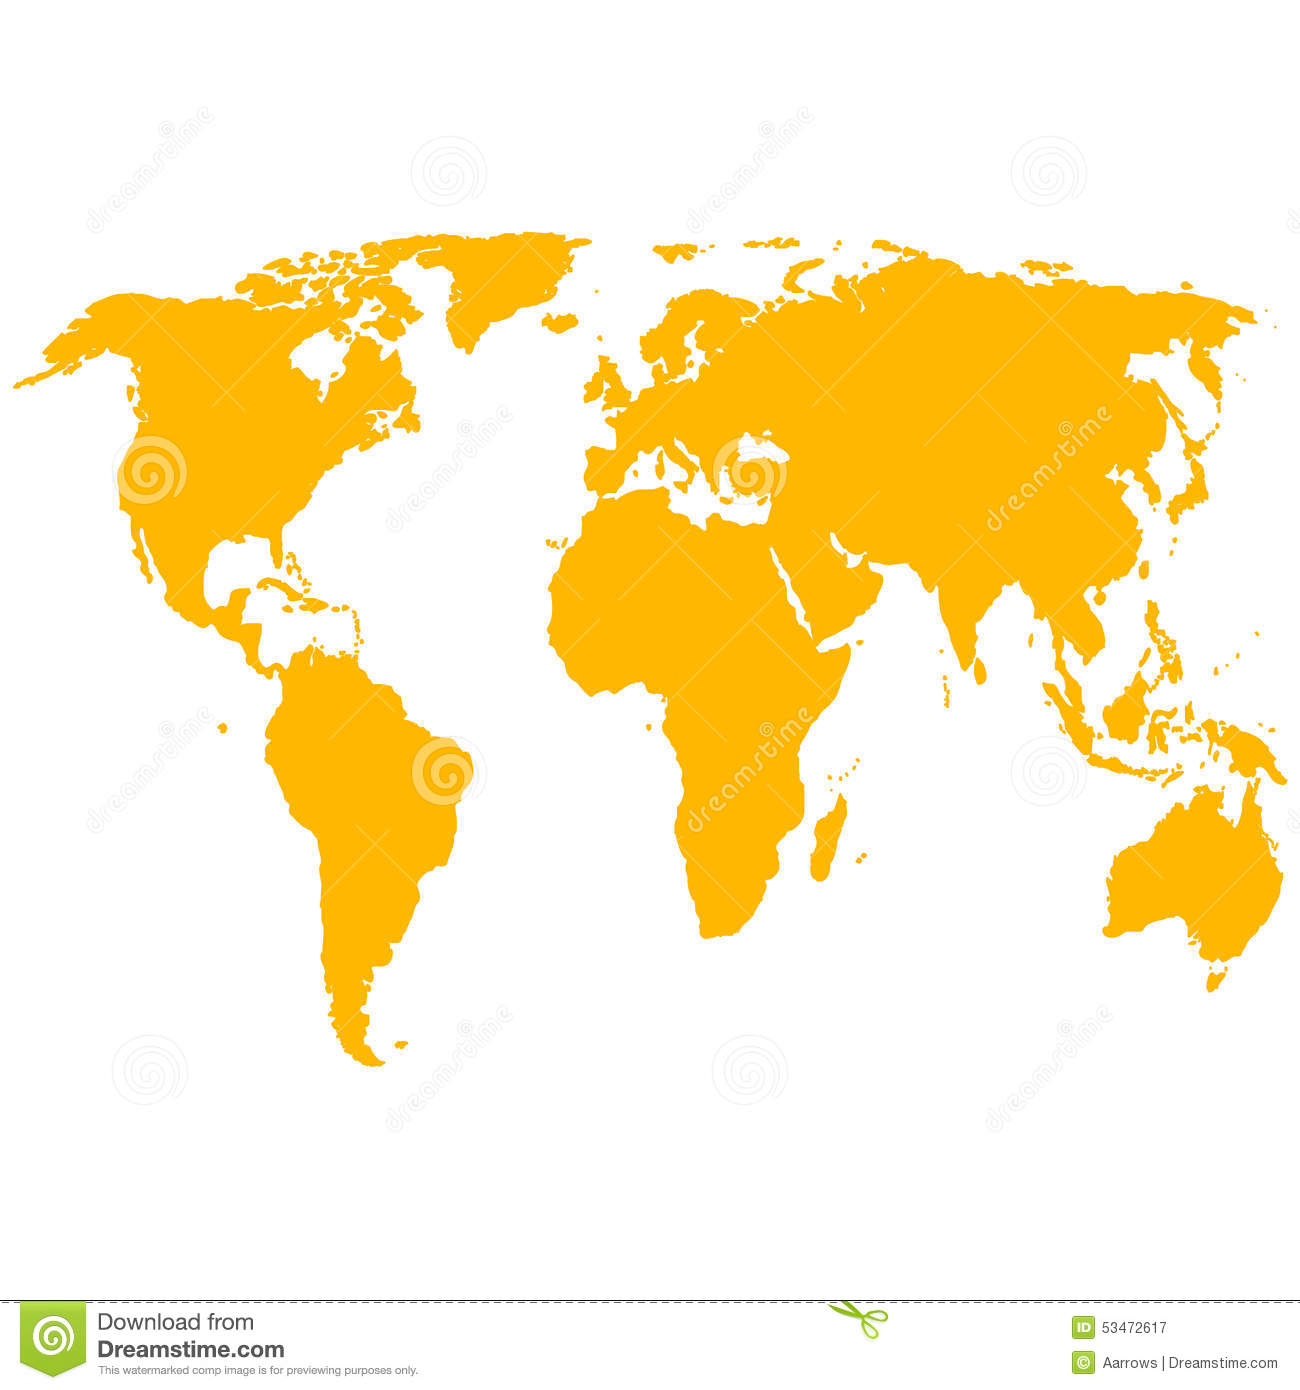 Silhouette world map vector illustration stock vector download comp gumiabroncs Gallery